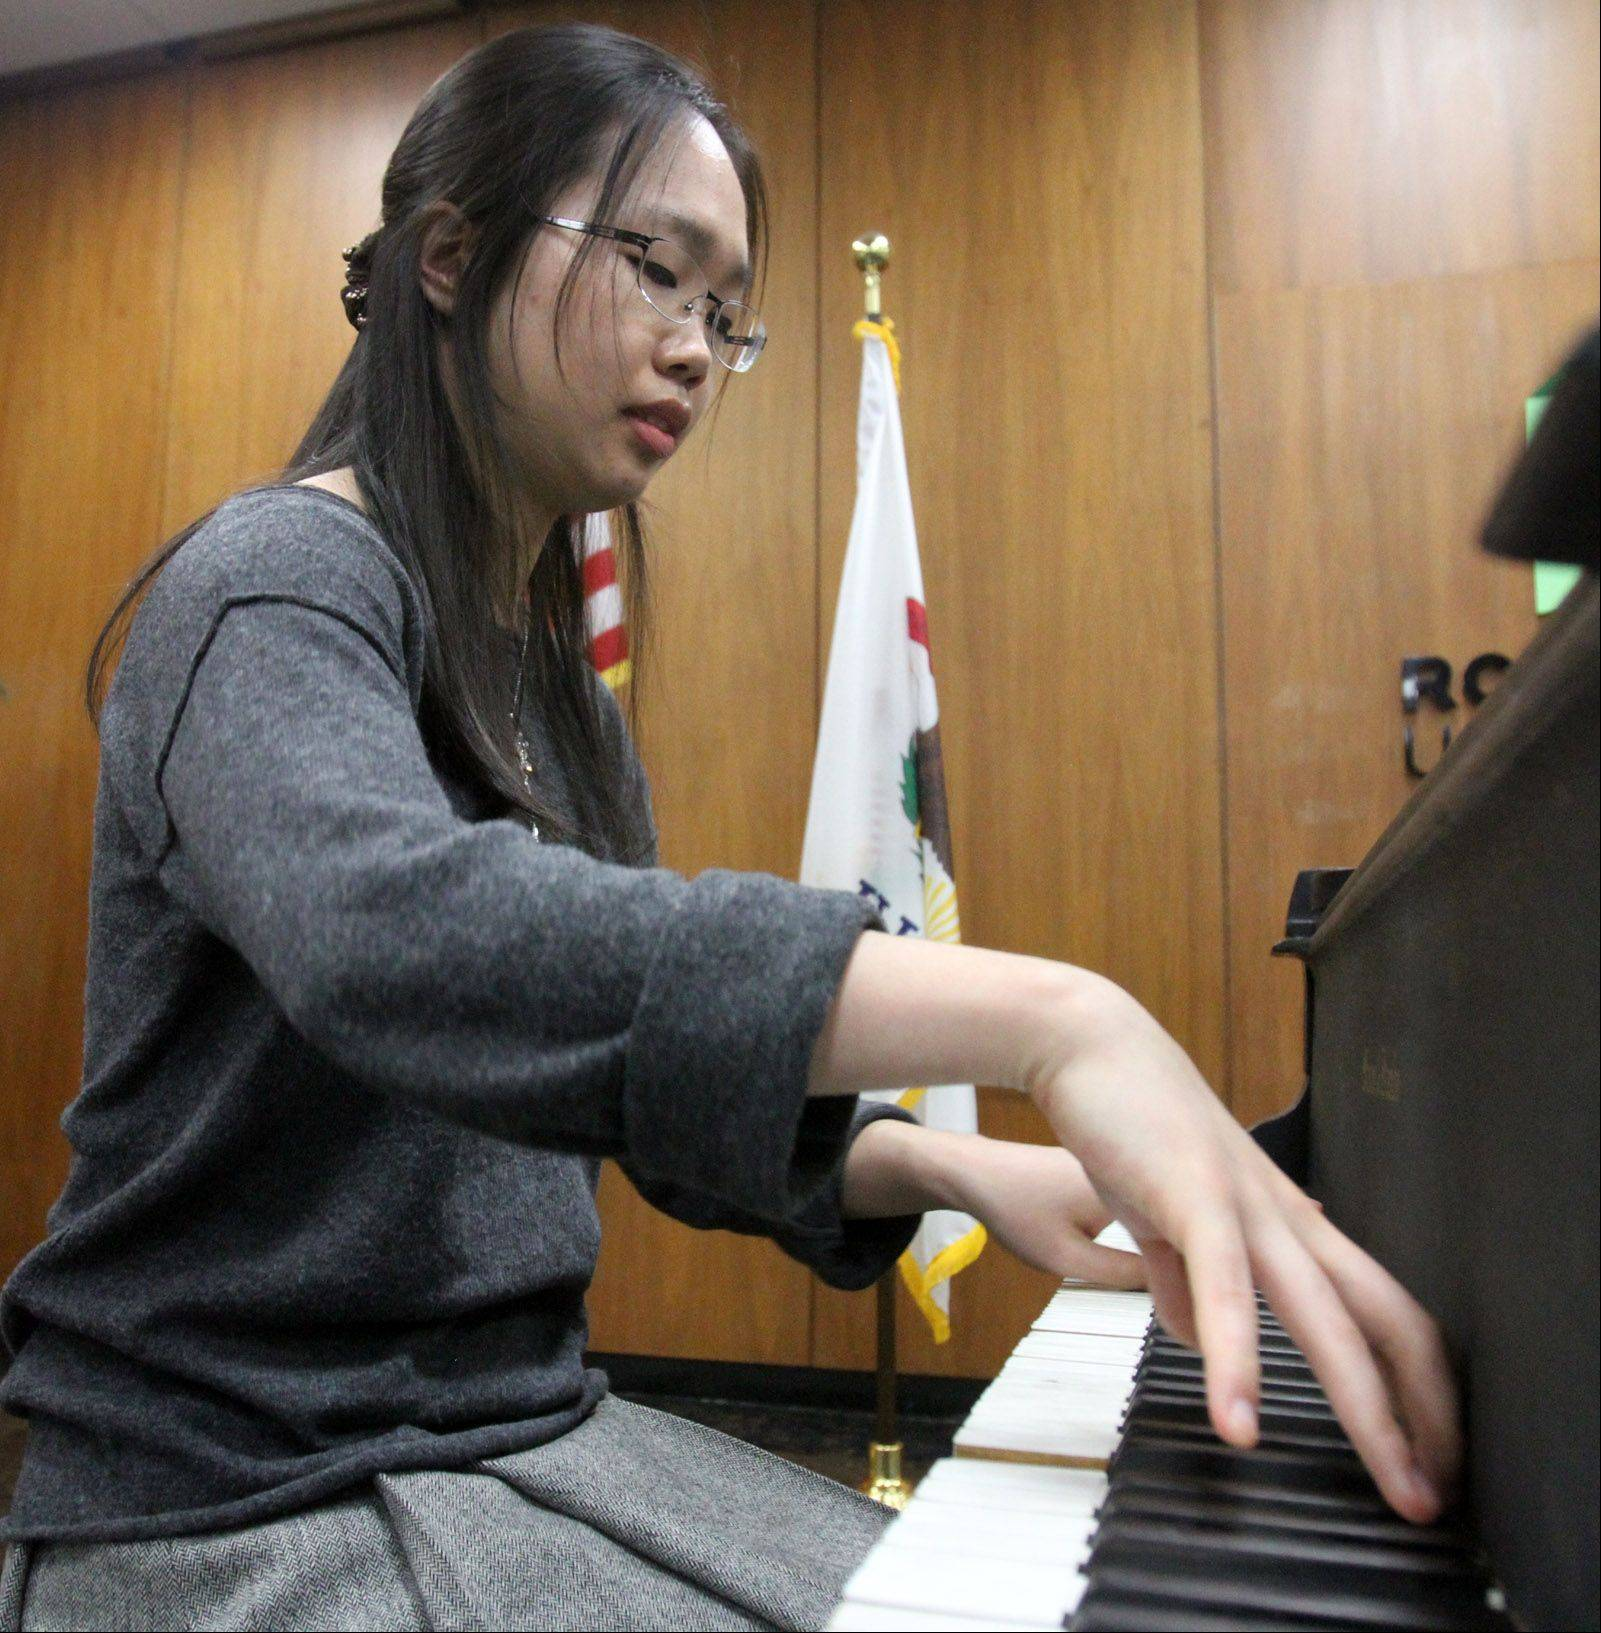 Roosevelt University student Chanmi Ryu plays Bach Prelude and Fugue in F major. Award-winning pianists from Roosevelt's College of Performing Arts performed in a piano showcase recital at the university's Schaumburg campus Tuesday.